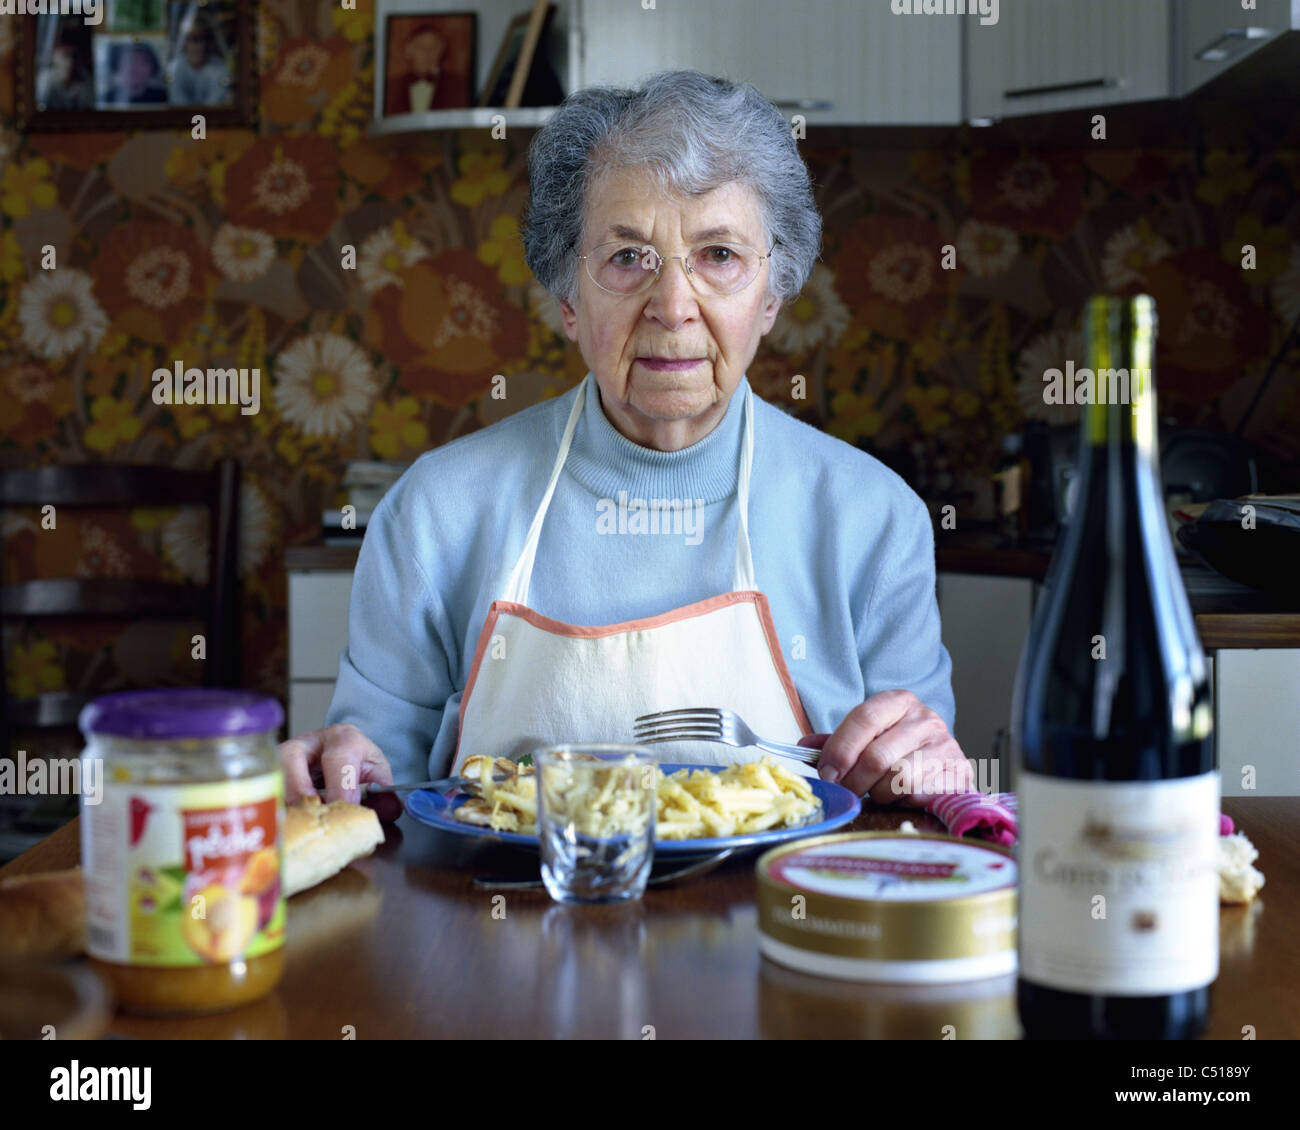 Senior woman eating at table, portrait - Stock Image